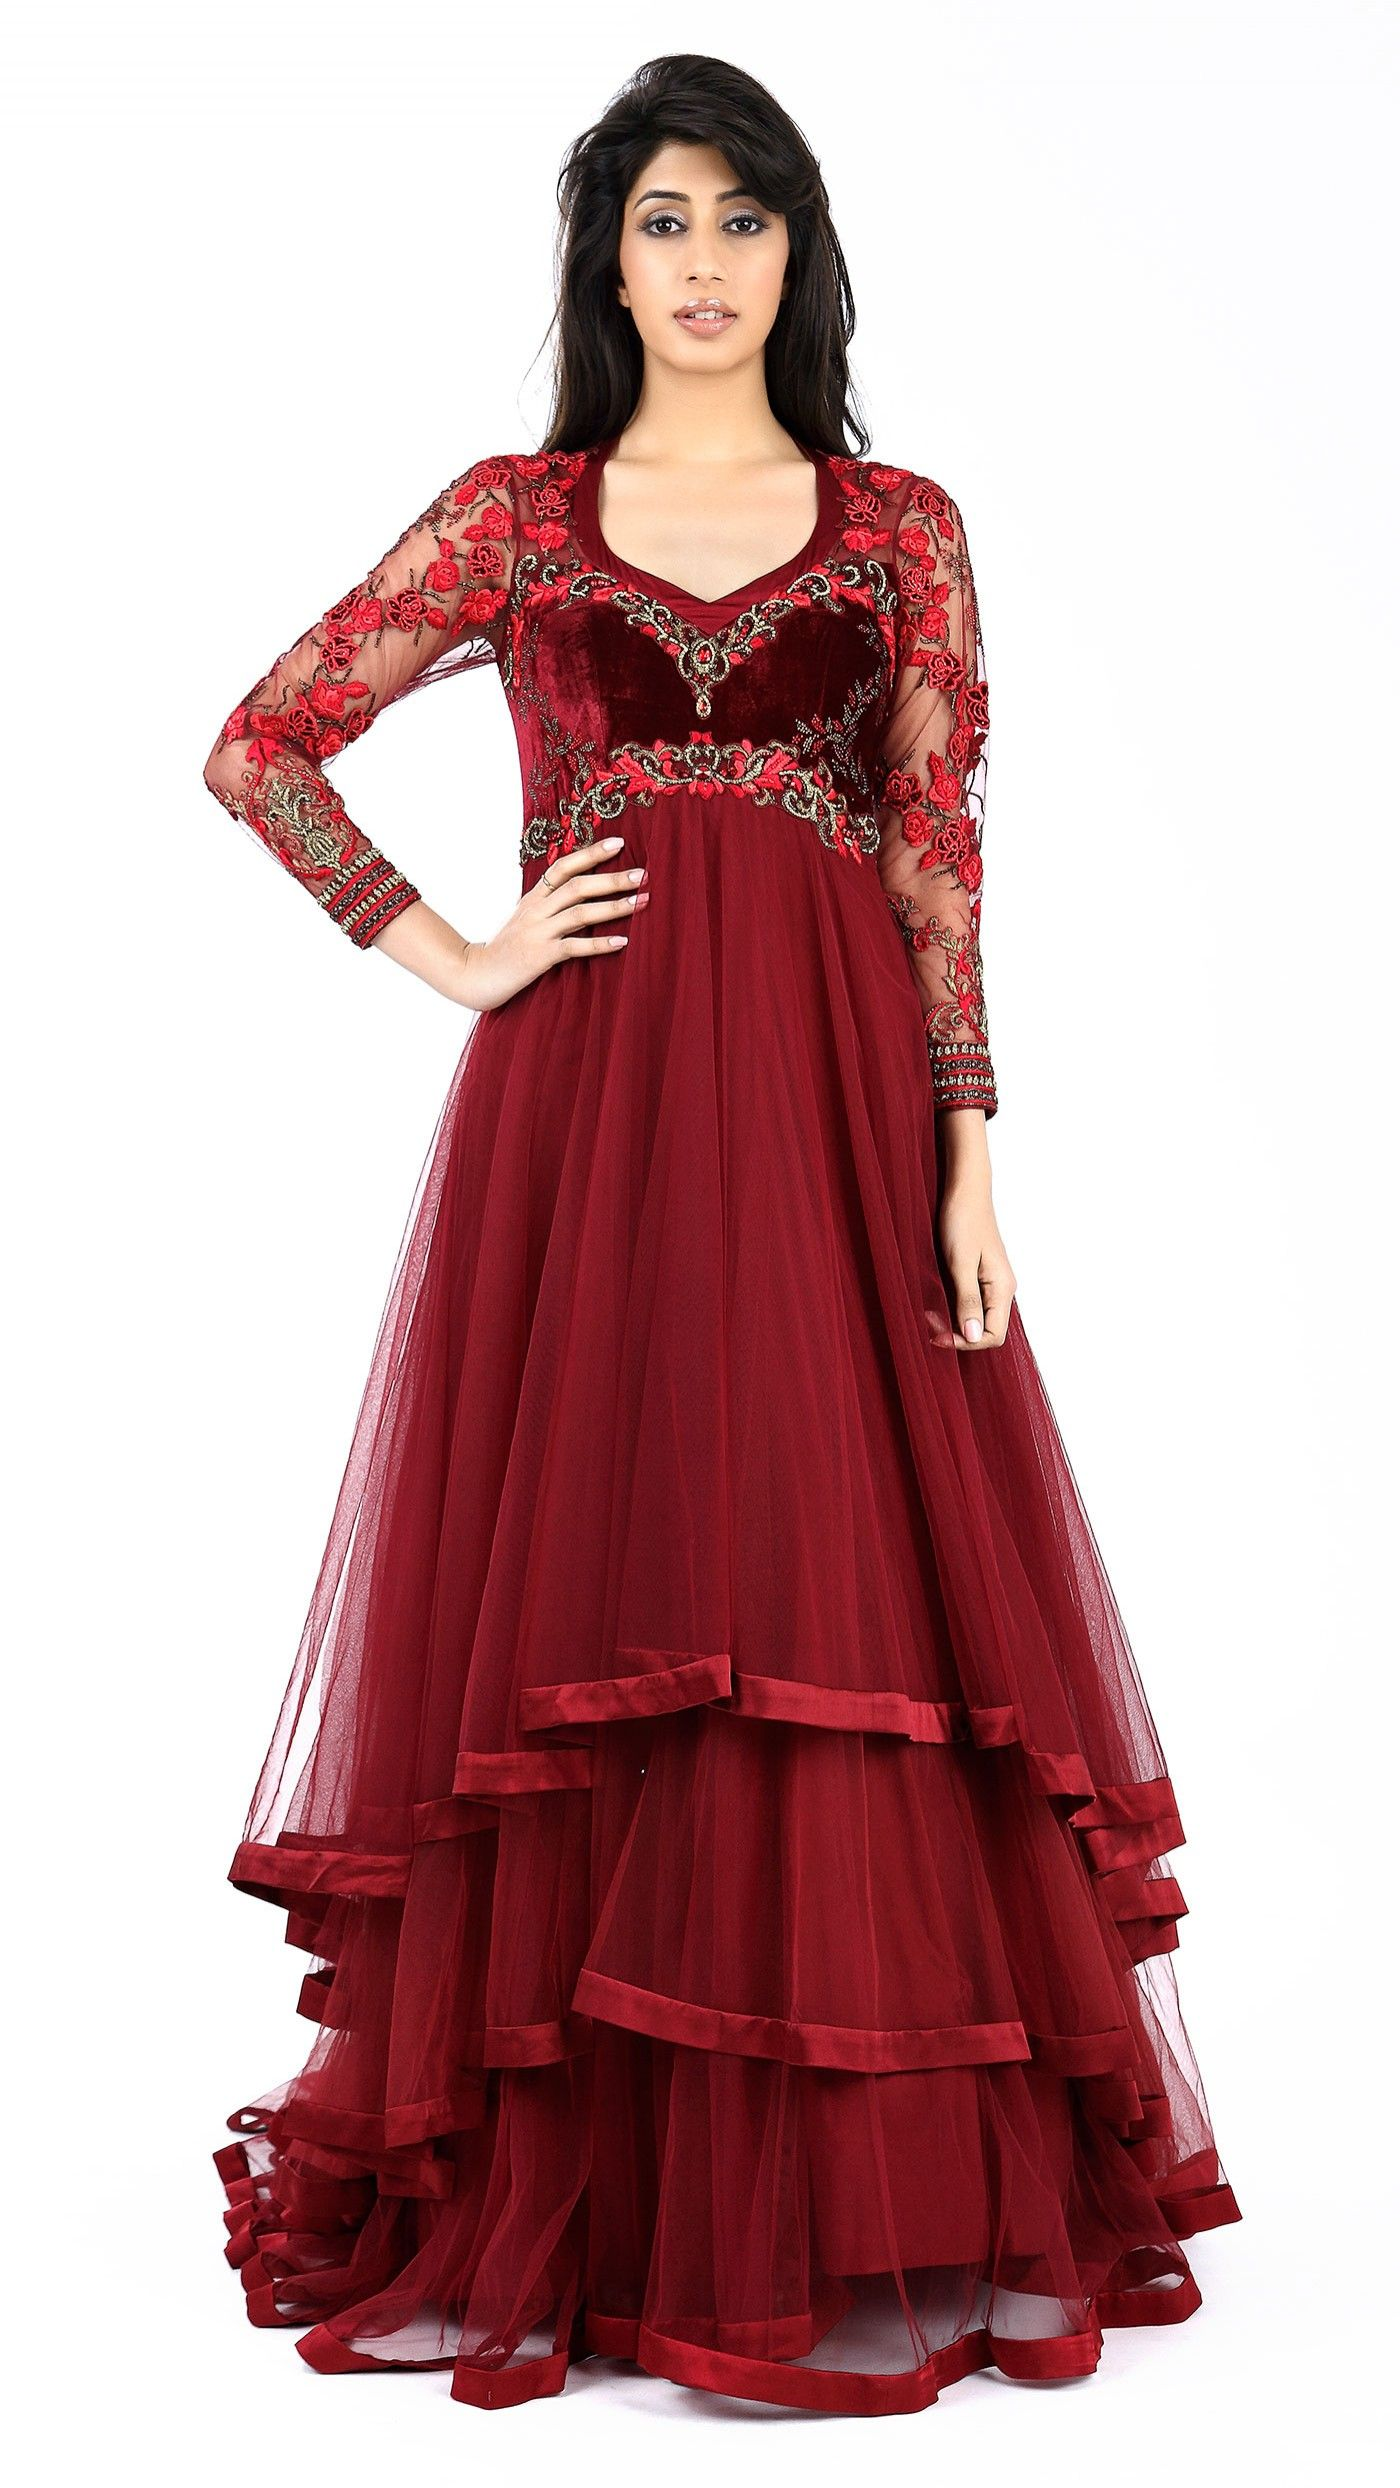 Maroon Net Gown With Images Indian Wedding Outfits Bridal